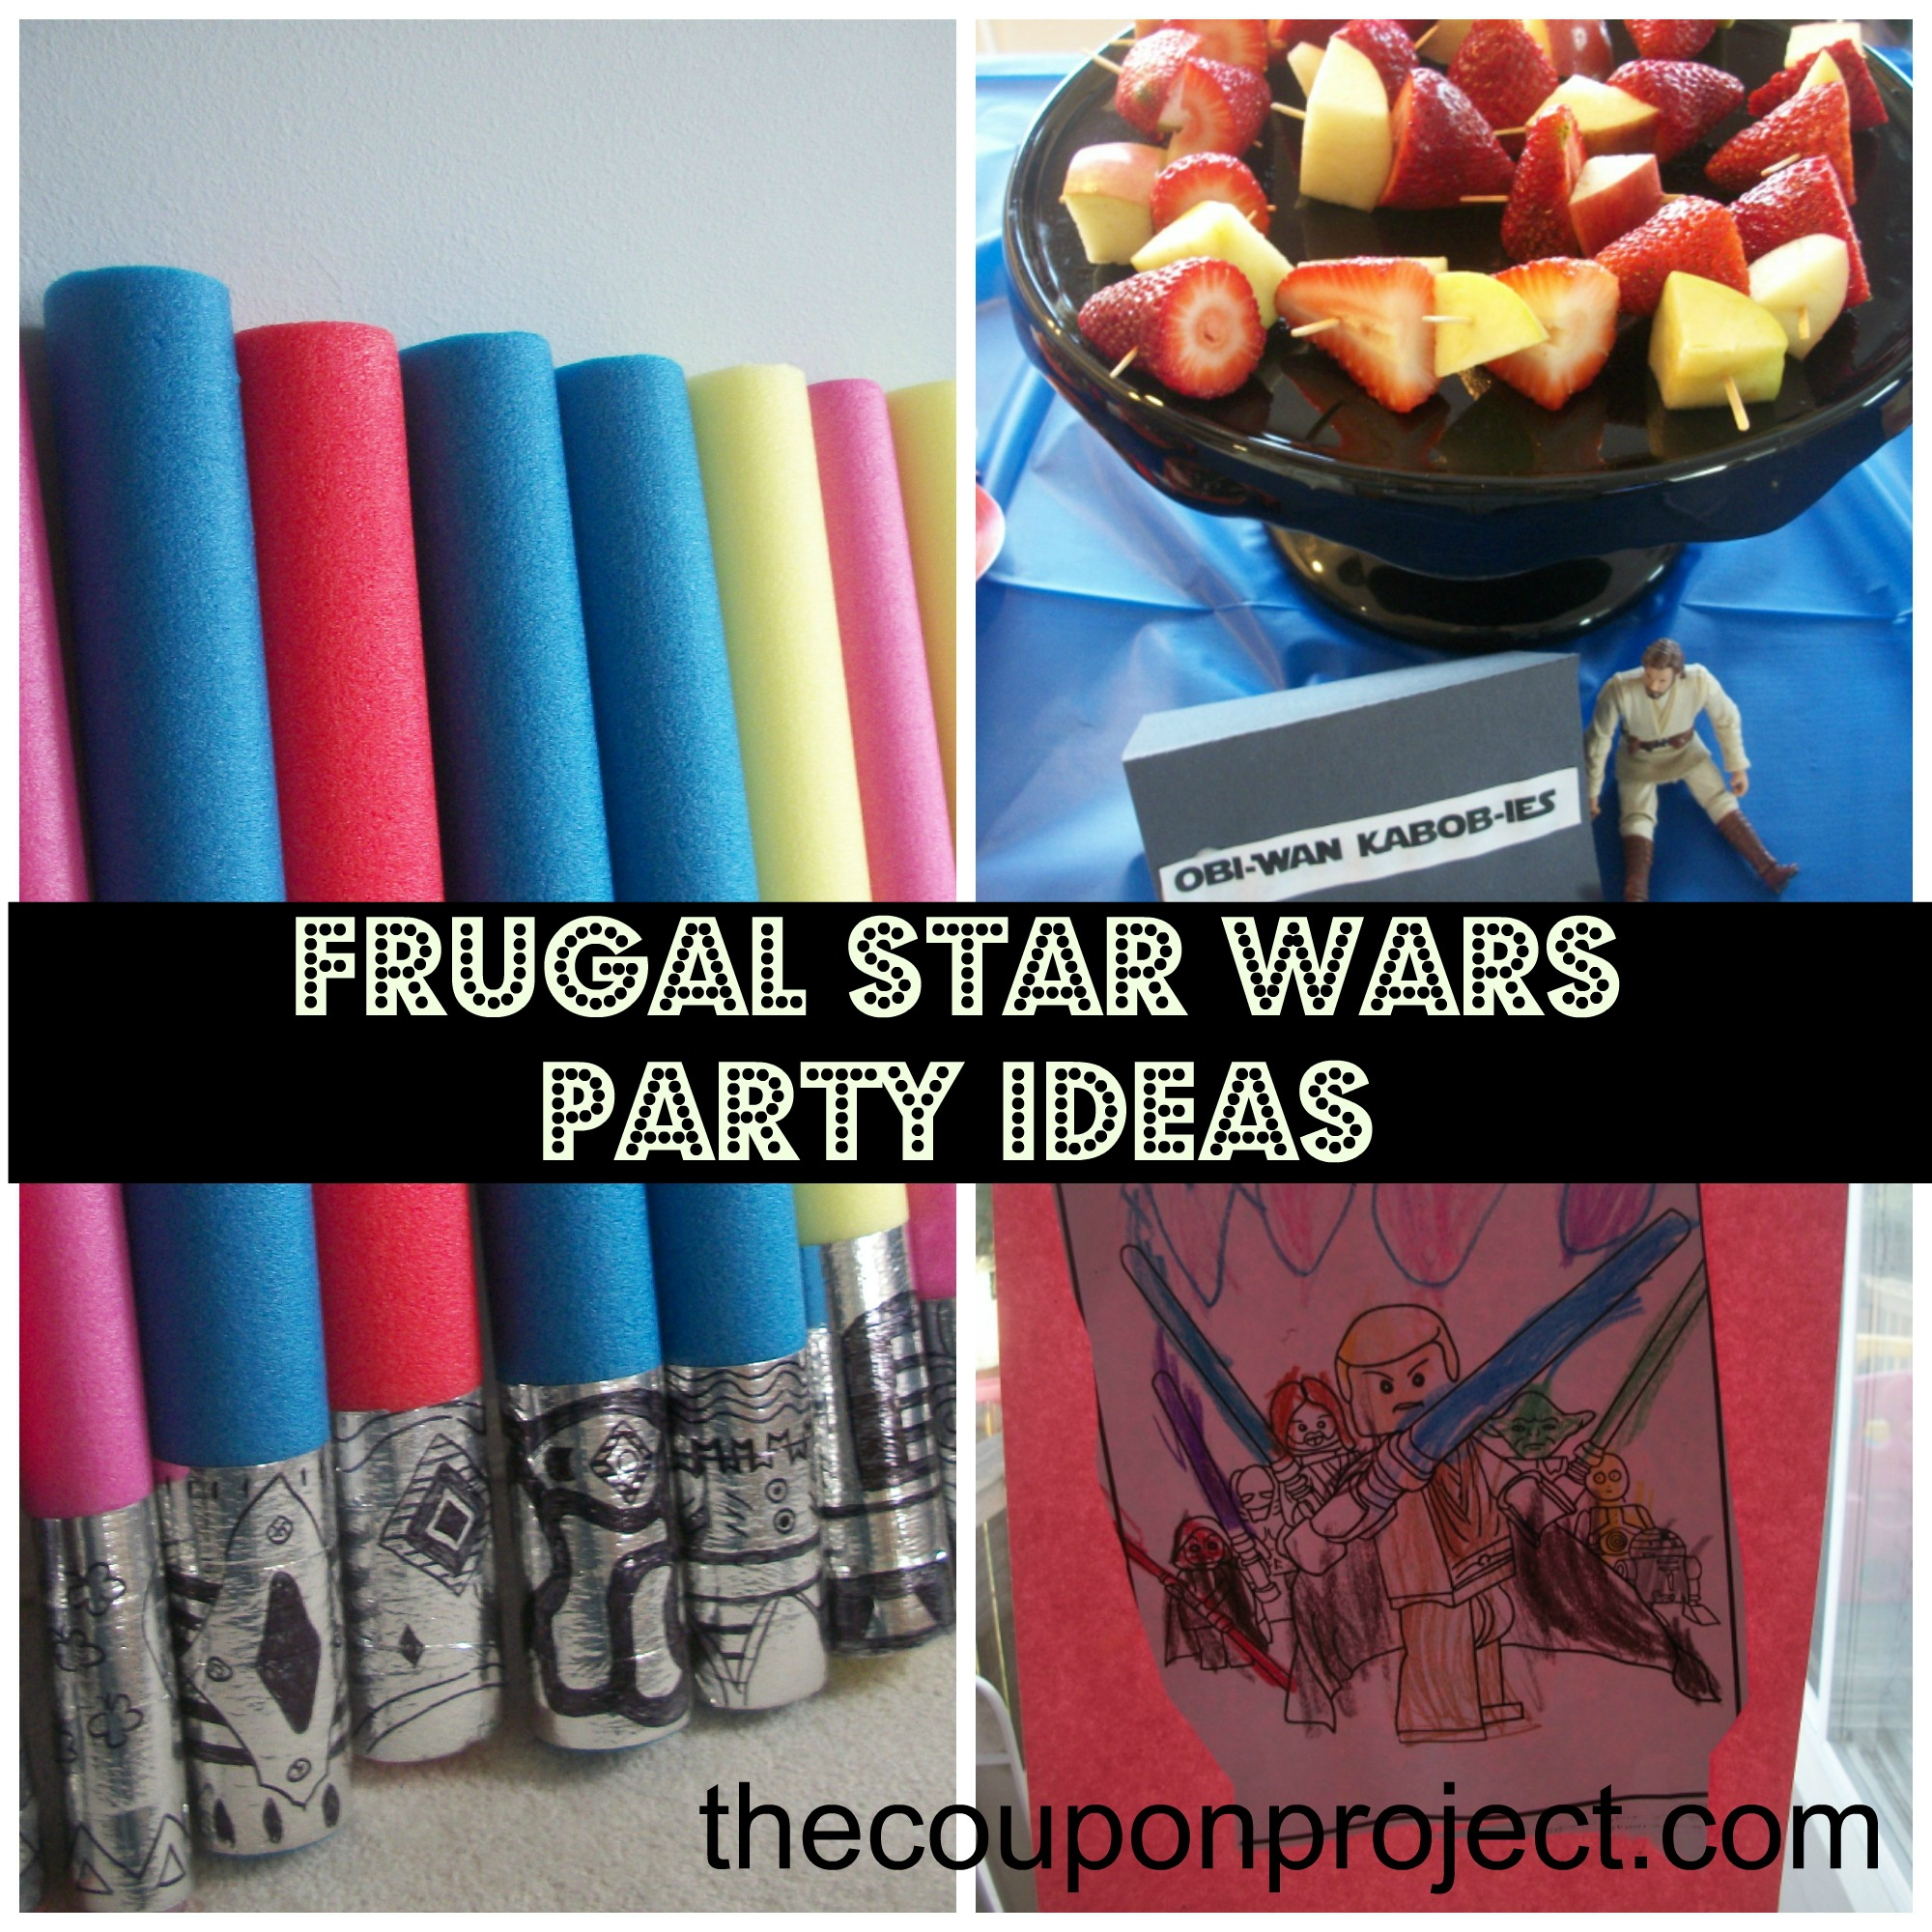 Star Wars Decorating Ideas Frugal Star Wars Party Ideas